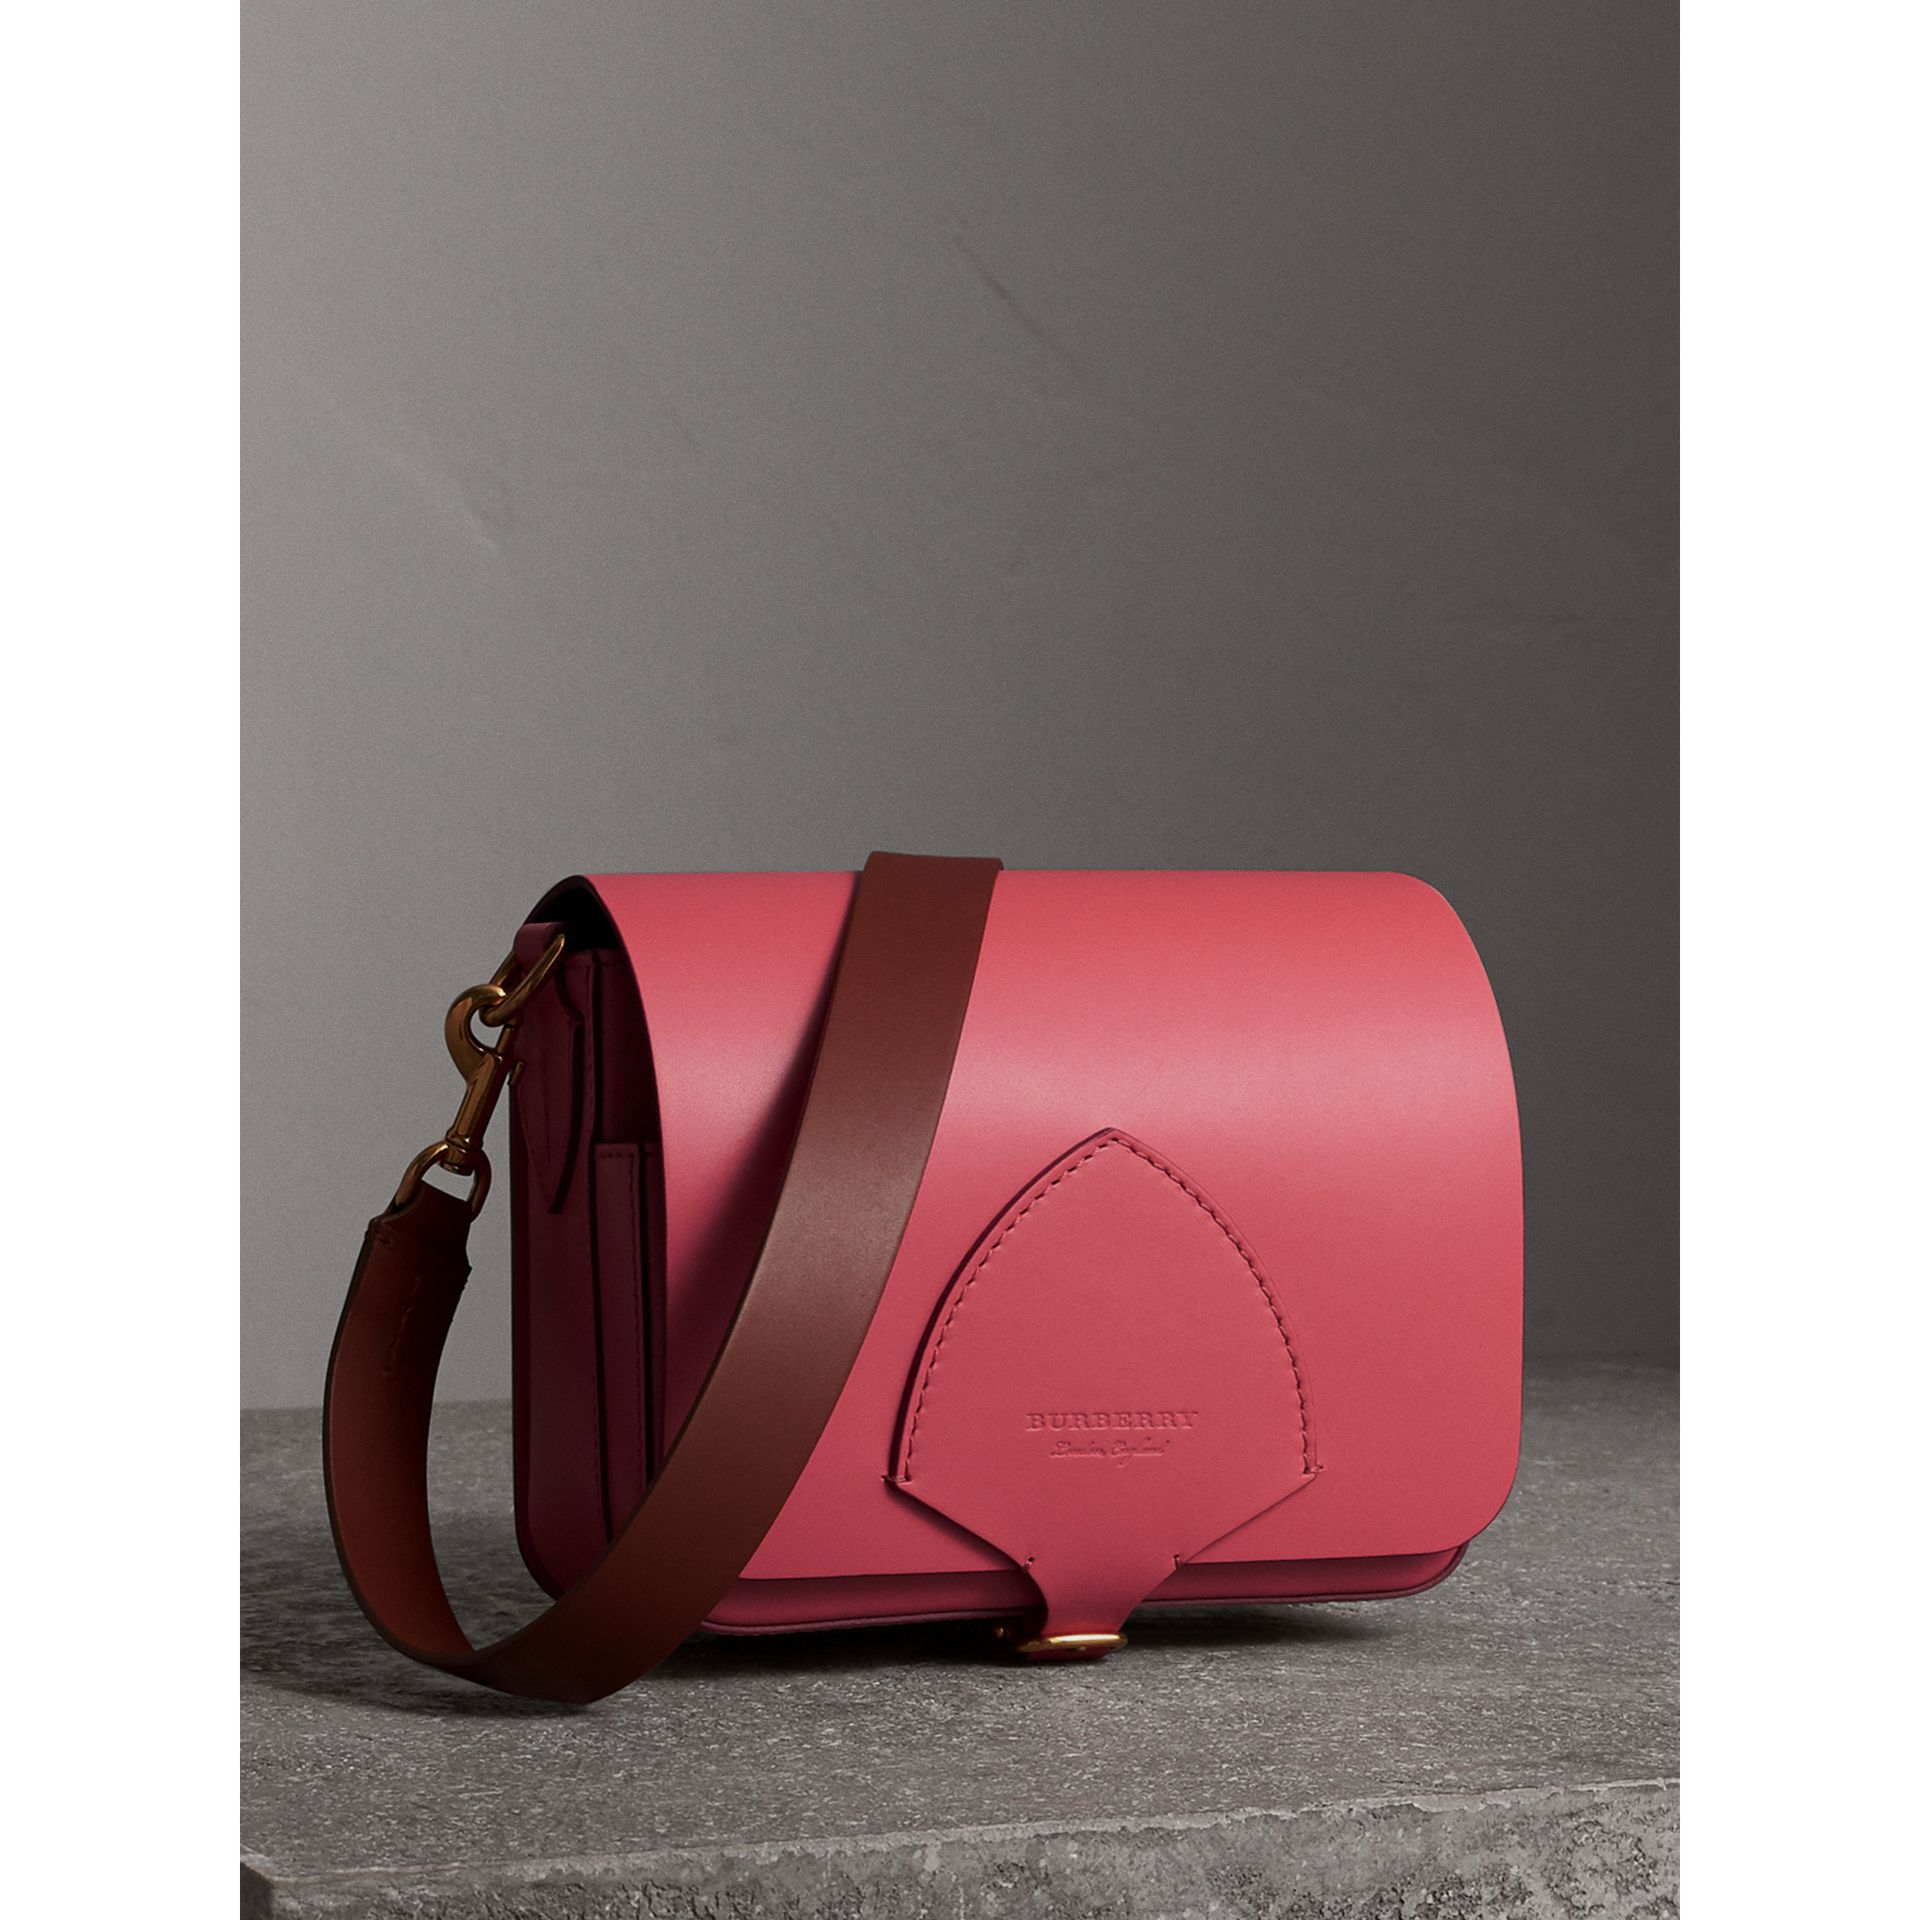 Sac The Satchel carré en cuir (Pivoine Vif) - Femme | Burberry - photo de la galerie 7